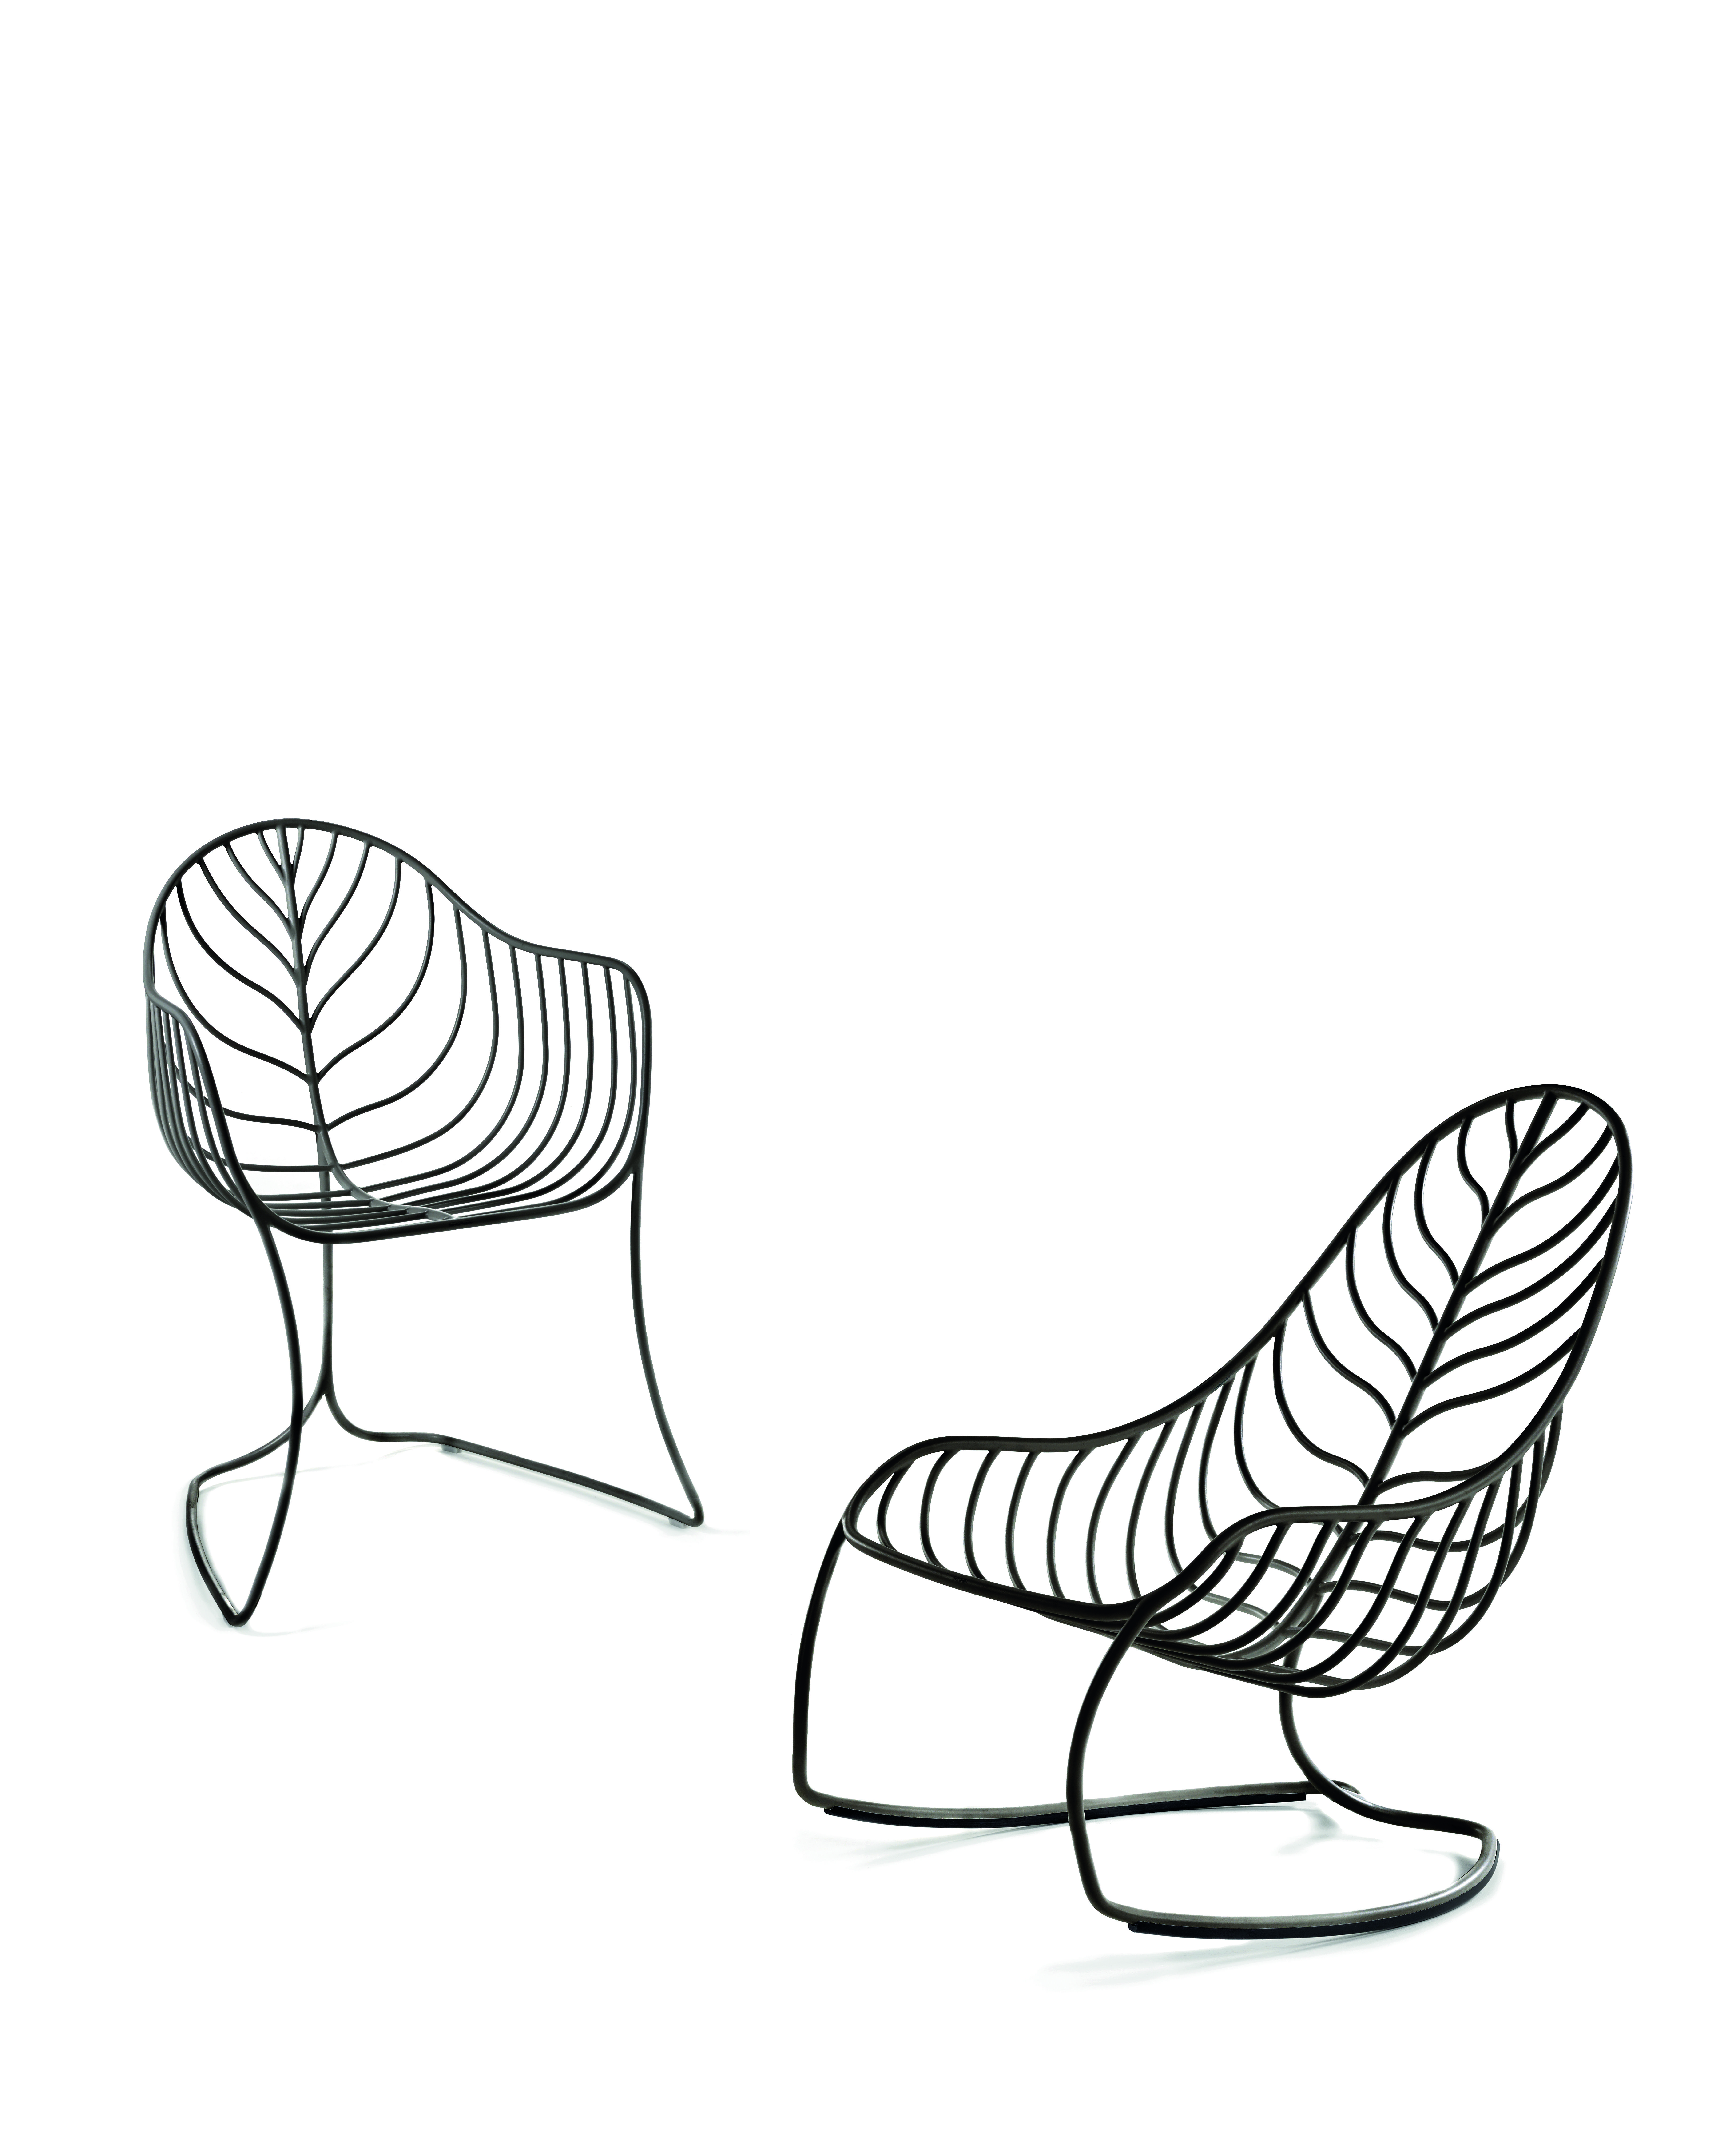 FOLIA by Royal Botania | The FOLIA is possibly the most playful item ...